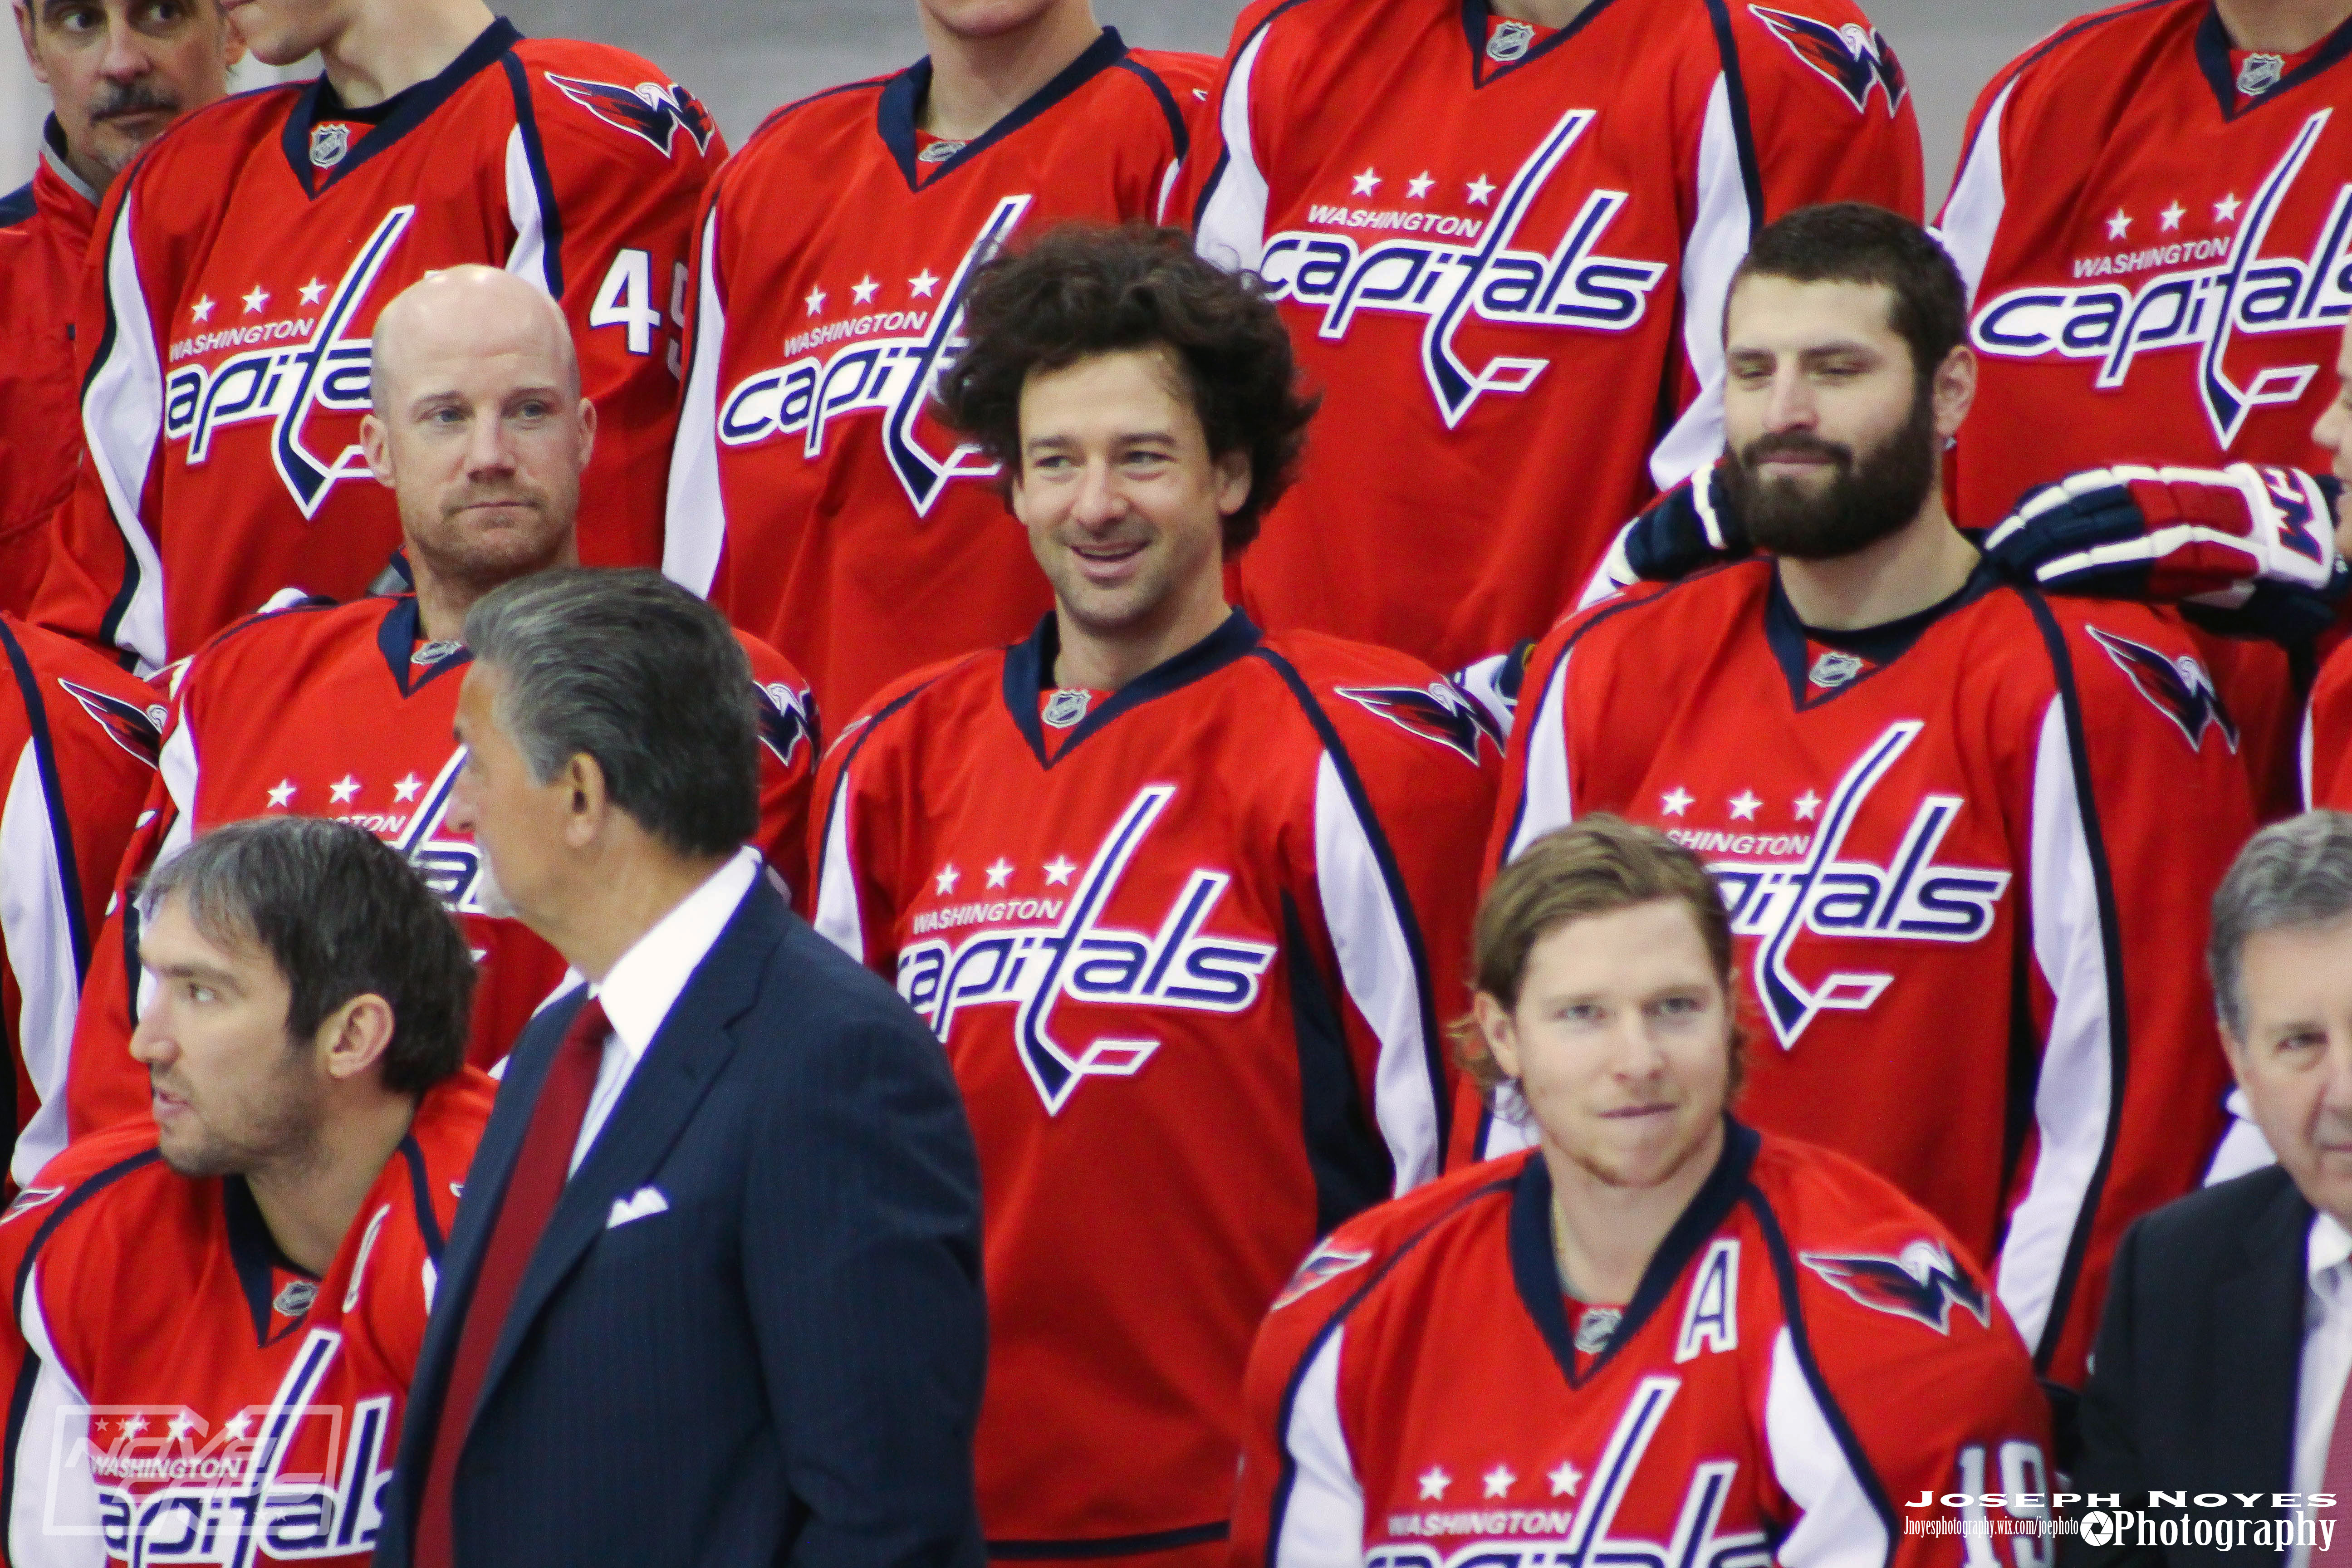 Justin-williams-washington-capitals-team-photo.jpg 20ba1b6ad3f